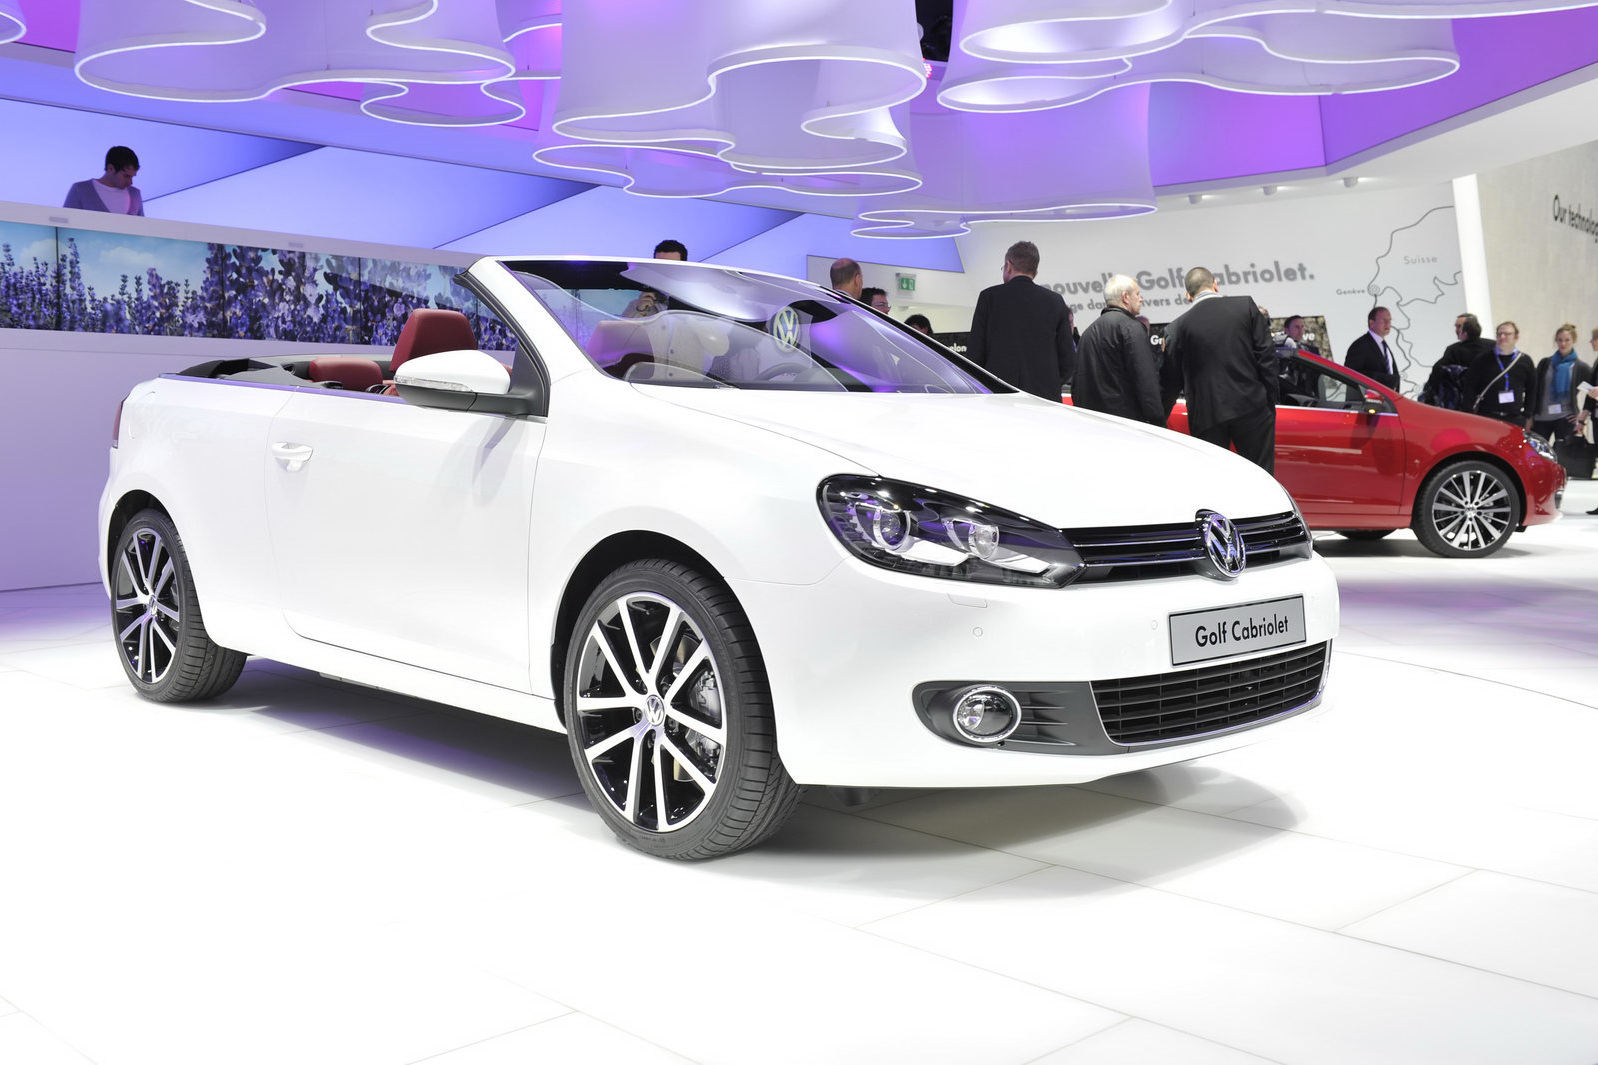 2016 Volkswagen Golf Cabriolet Exterior (Photo 1 of 10)